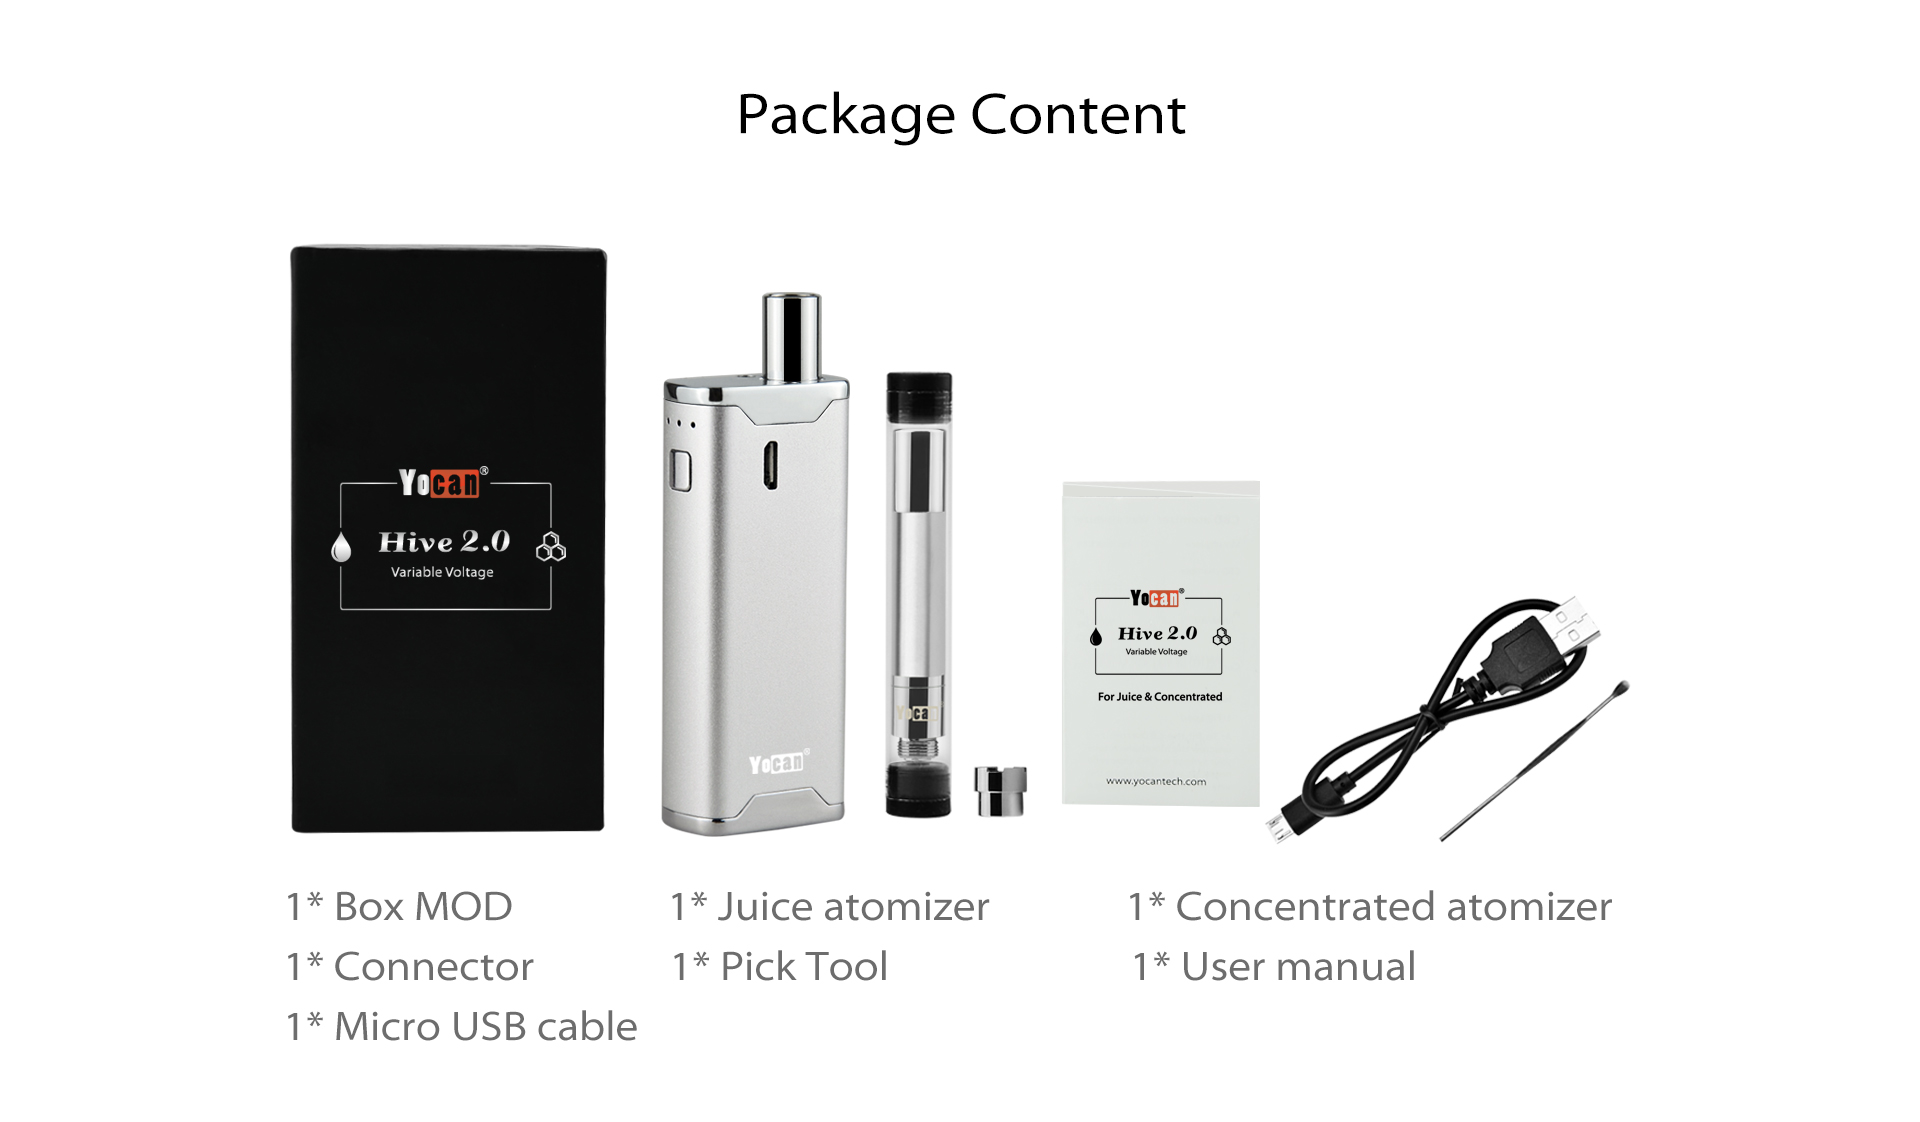 Package Content of Yocan Hive 2.0 Box Mod